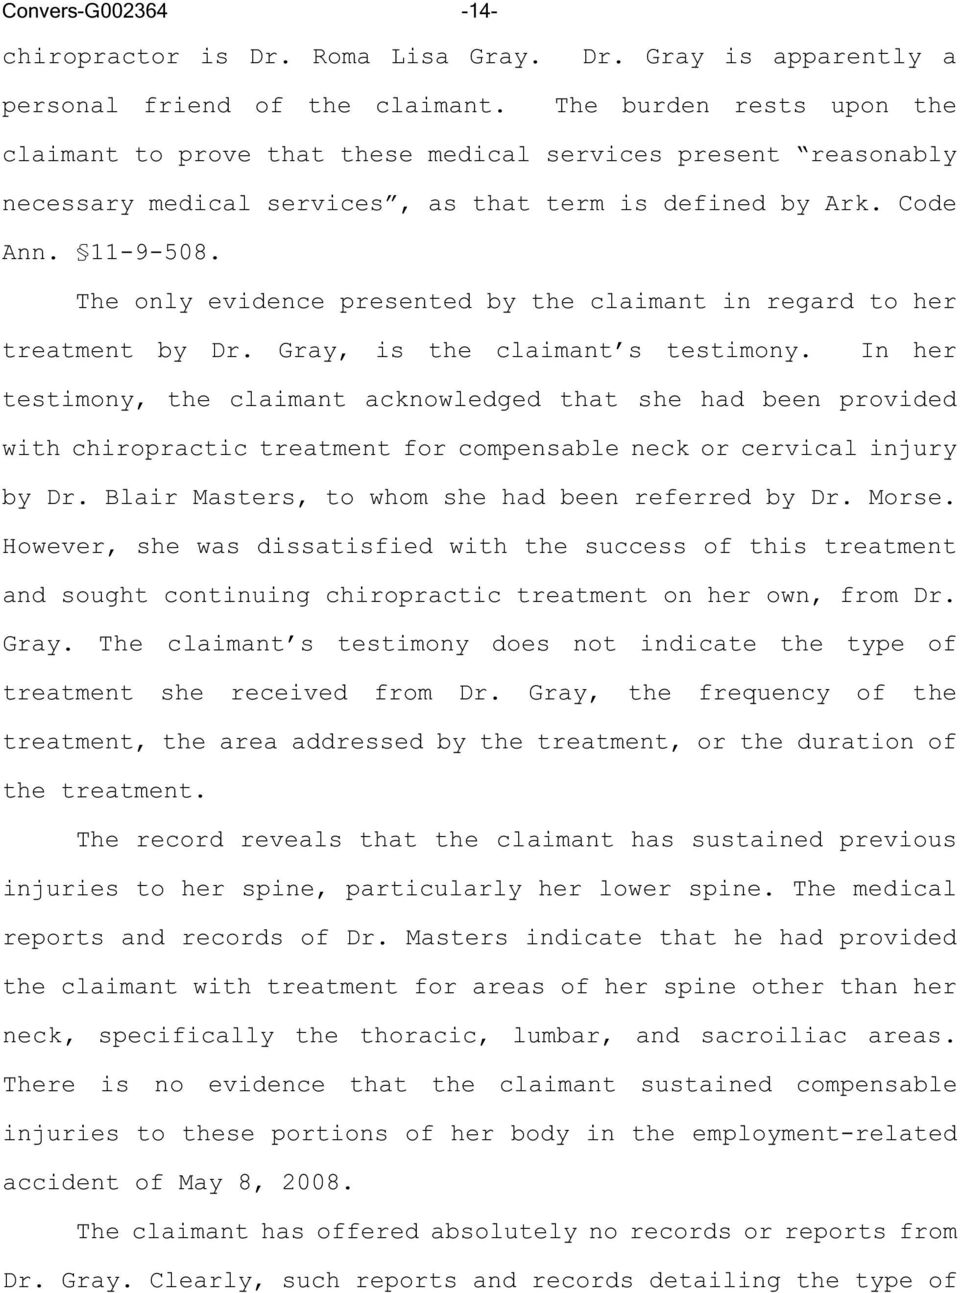 Gray is apparently a The burden rests upon the claimant to prove that these medical services present reasonably necessary medical services, as that term is defined by Ark. Code Ann. 11-9-508.